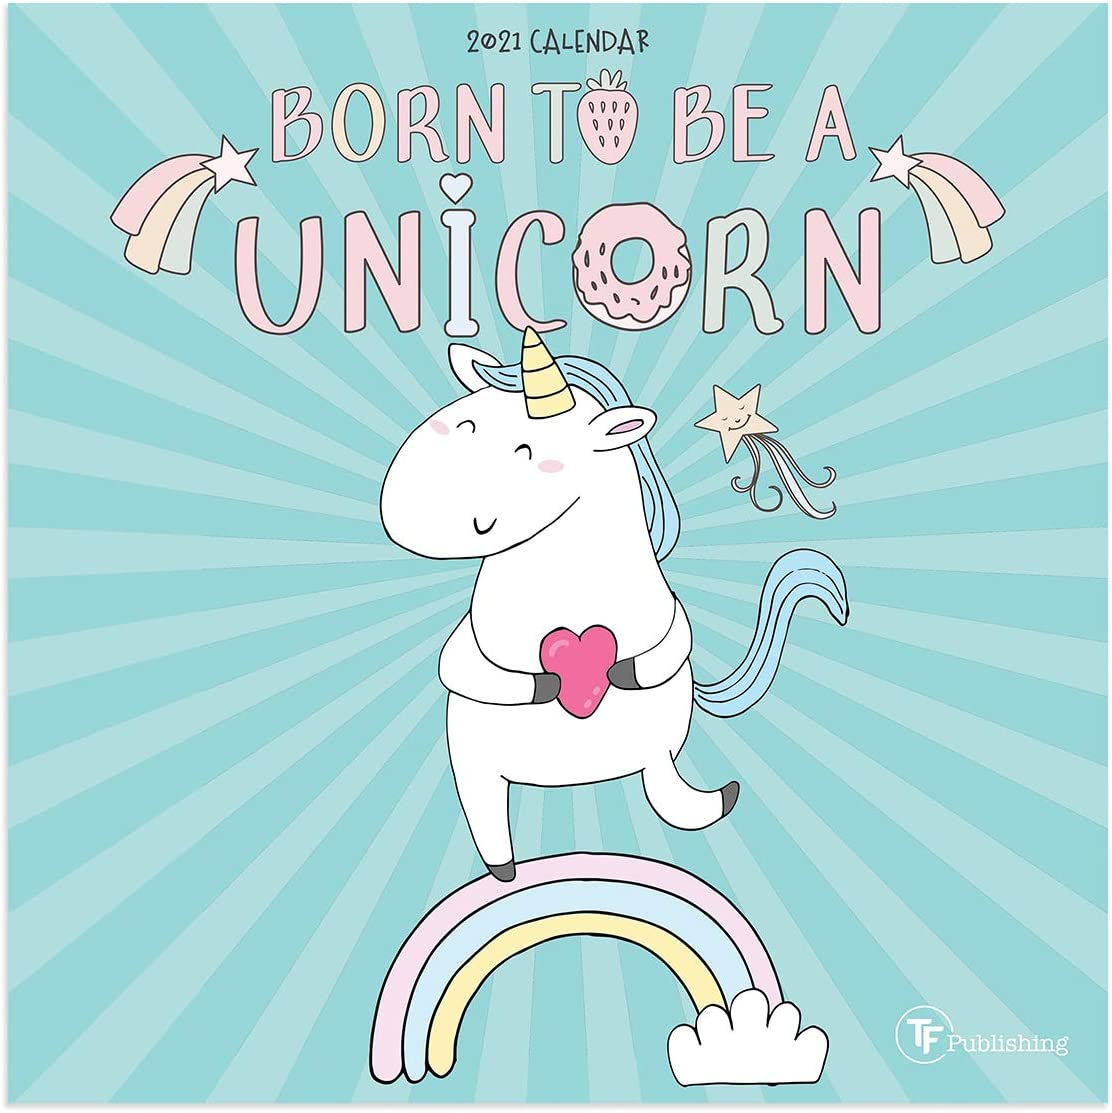 """TF PUBLISHING 2021 Unicorns Mini Monthly Wall Calendar - Magical Rainbow Illustrations Contacts and Notes Space - Home or Office Planning and Organization in Compact Spaces - Premium Matte Paper 7""""x7"""""""